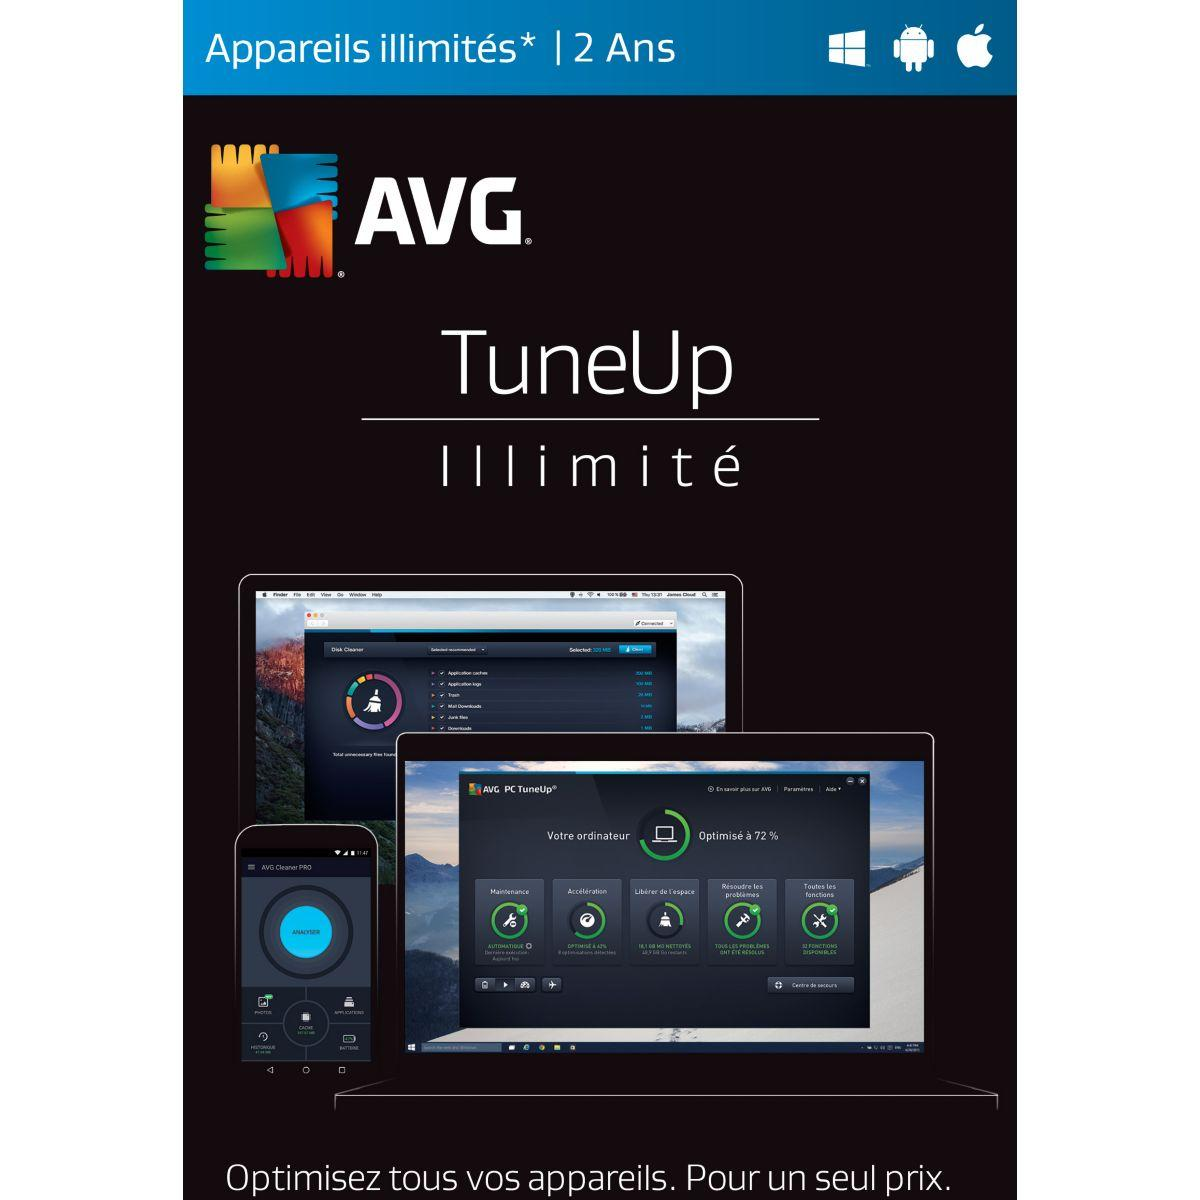 Log-pc tune up tuneup (appareils illimit - 2% de remise immédiate avec le code : wd2 (photo)